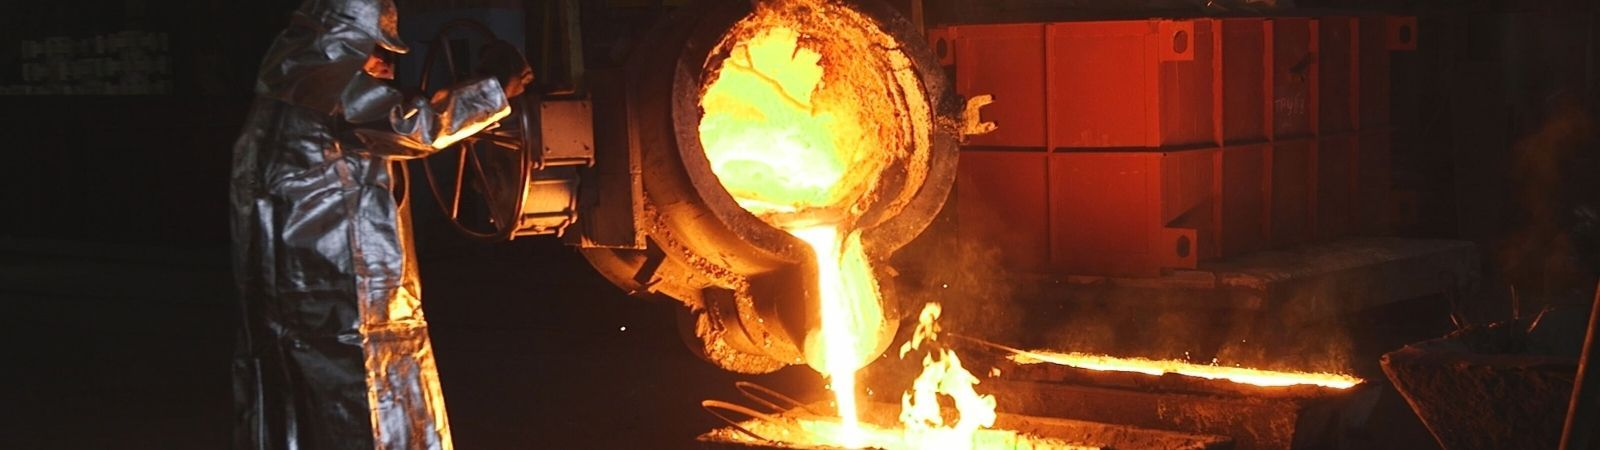 Smelter employee in a silver protective hazmat suit pouring molten gold from a heavy industrial pot into a container on the ground.